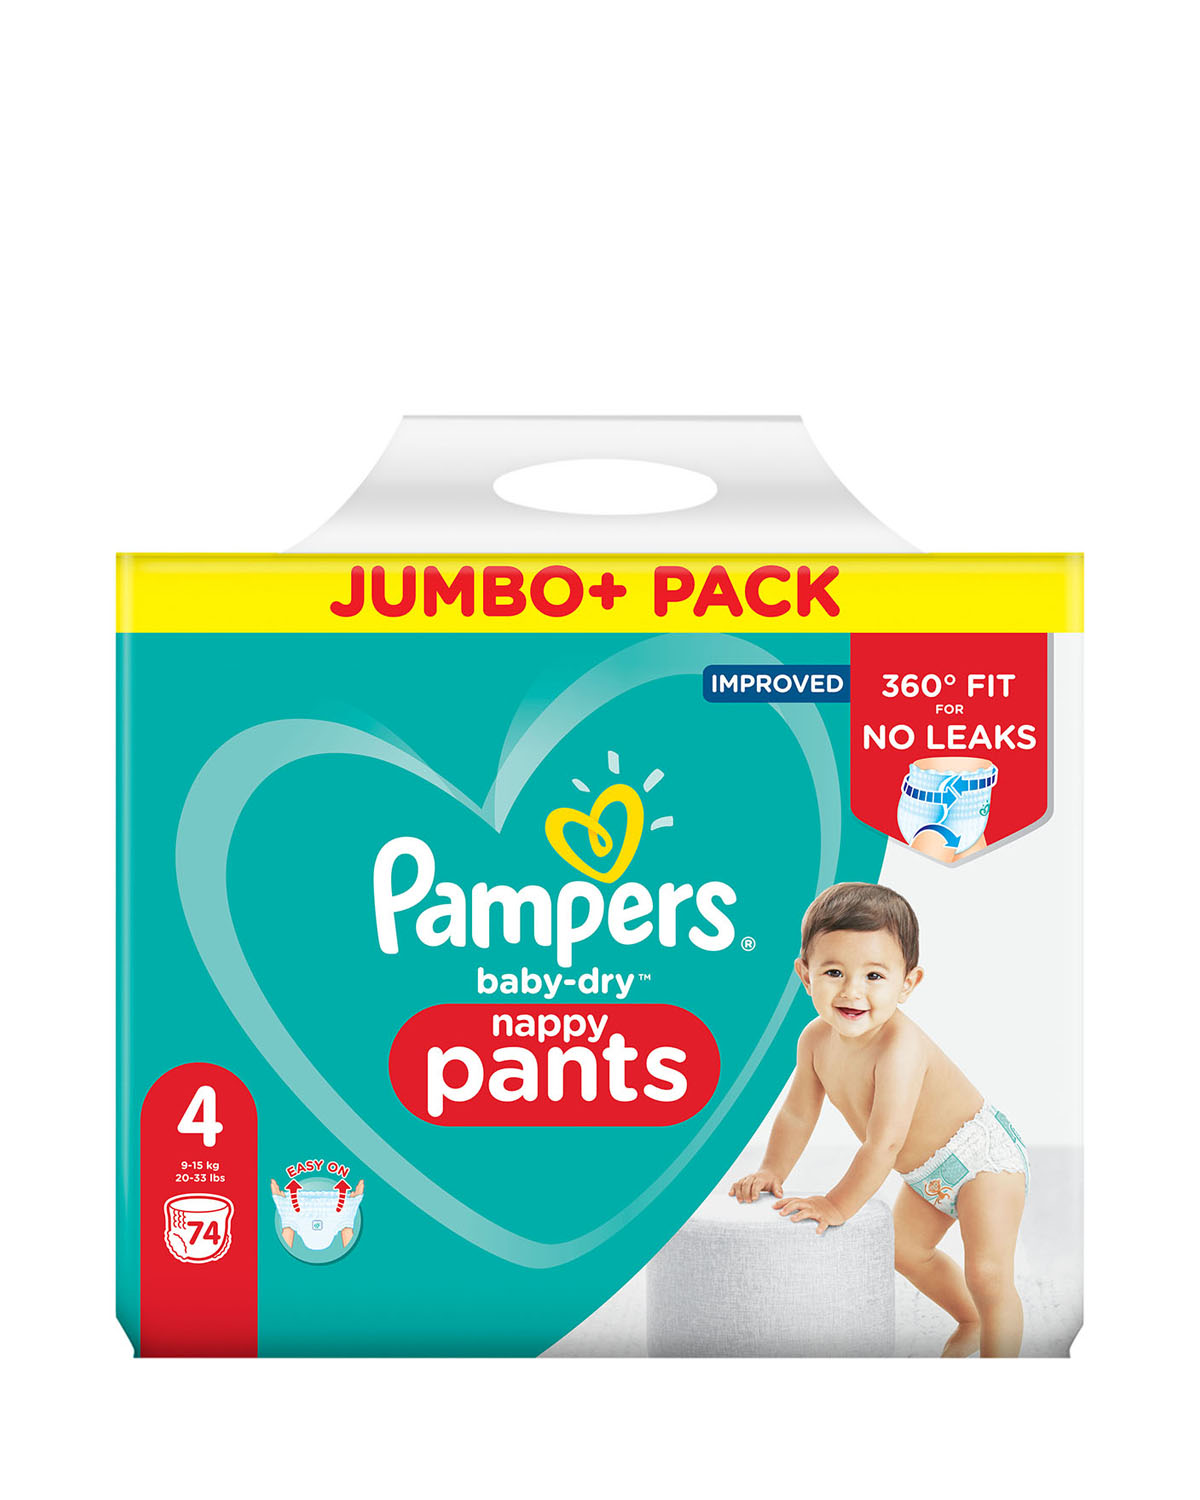 Pampers Baby Dry Nappy Pants Size: 4 - 74 Nappies thumbnail